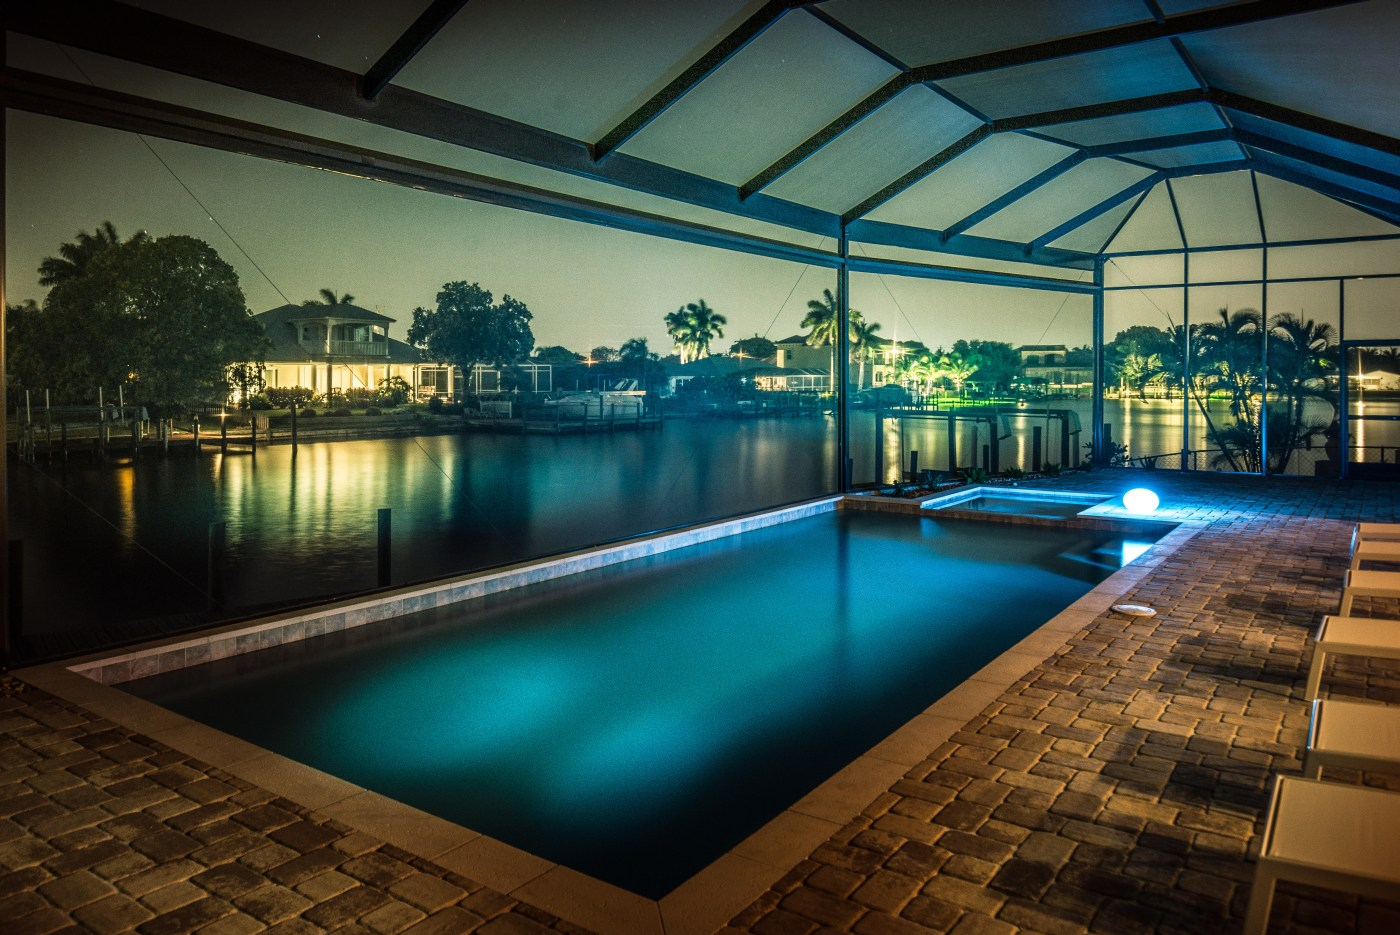 Pool in Florida